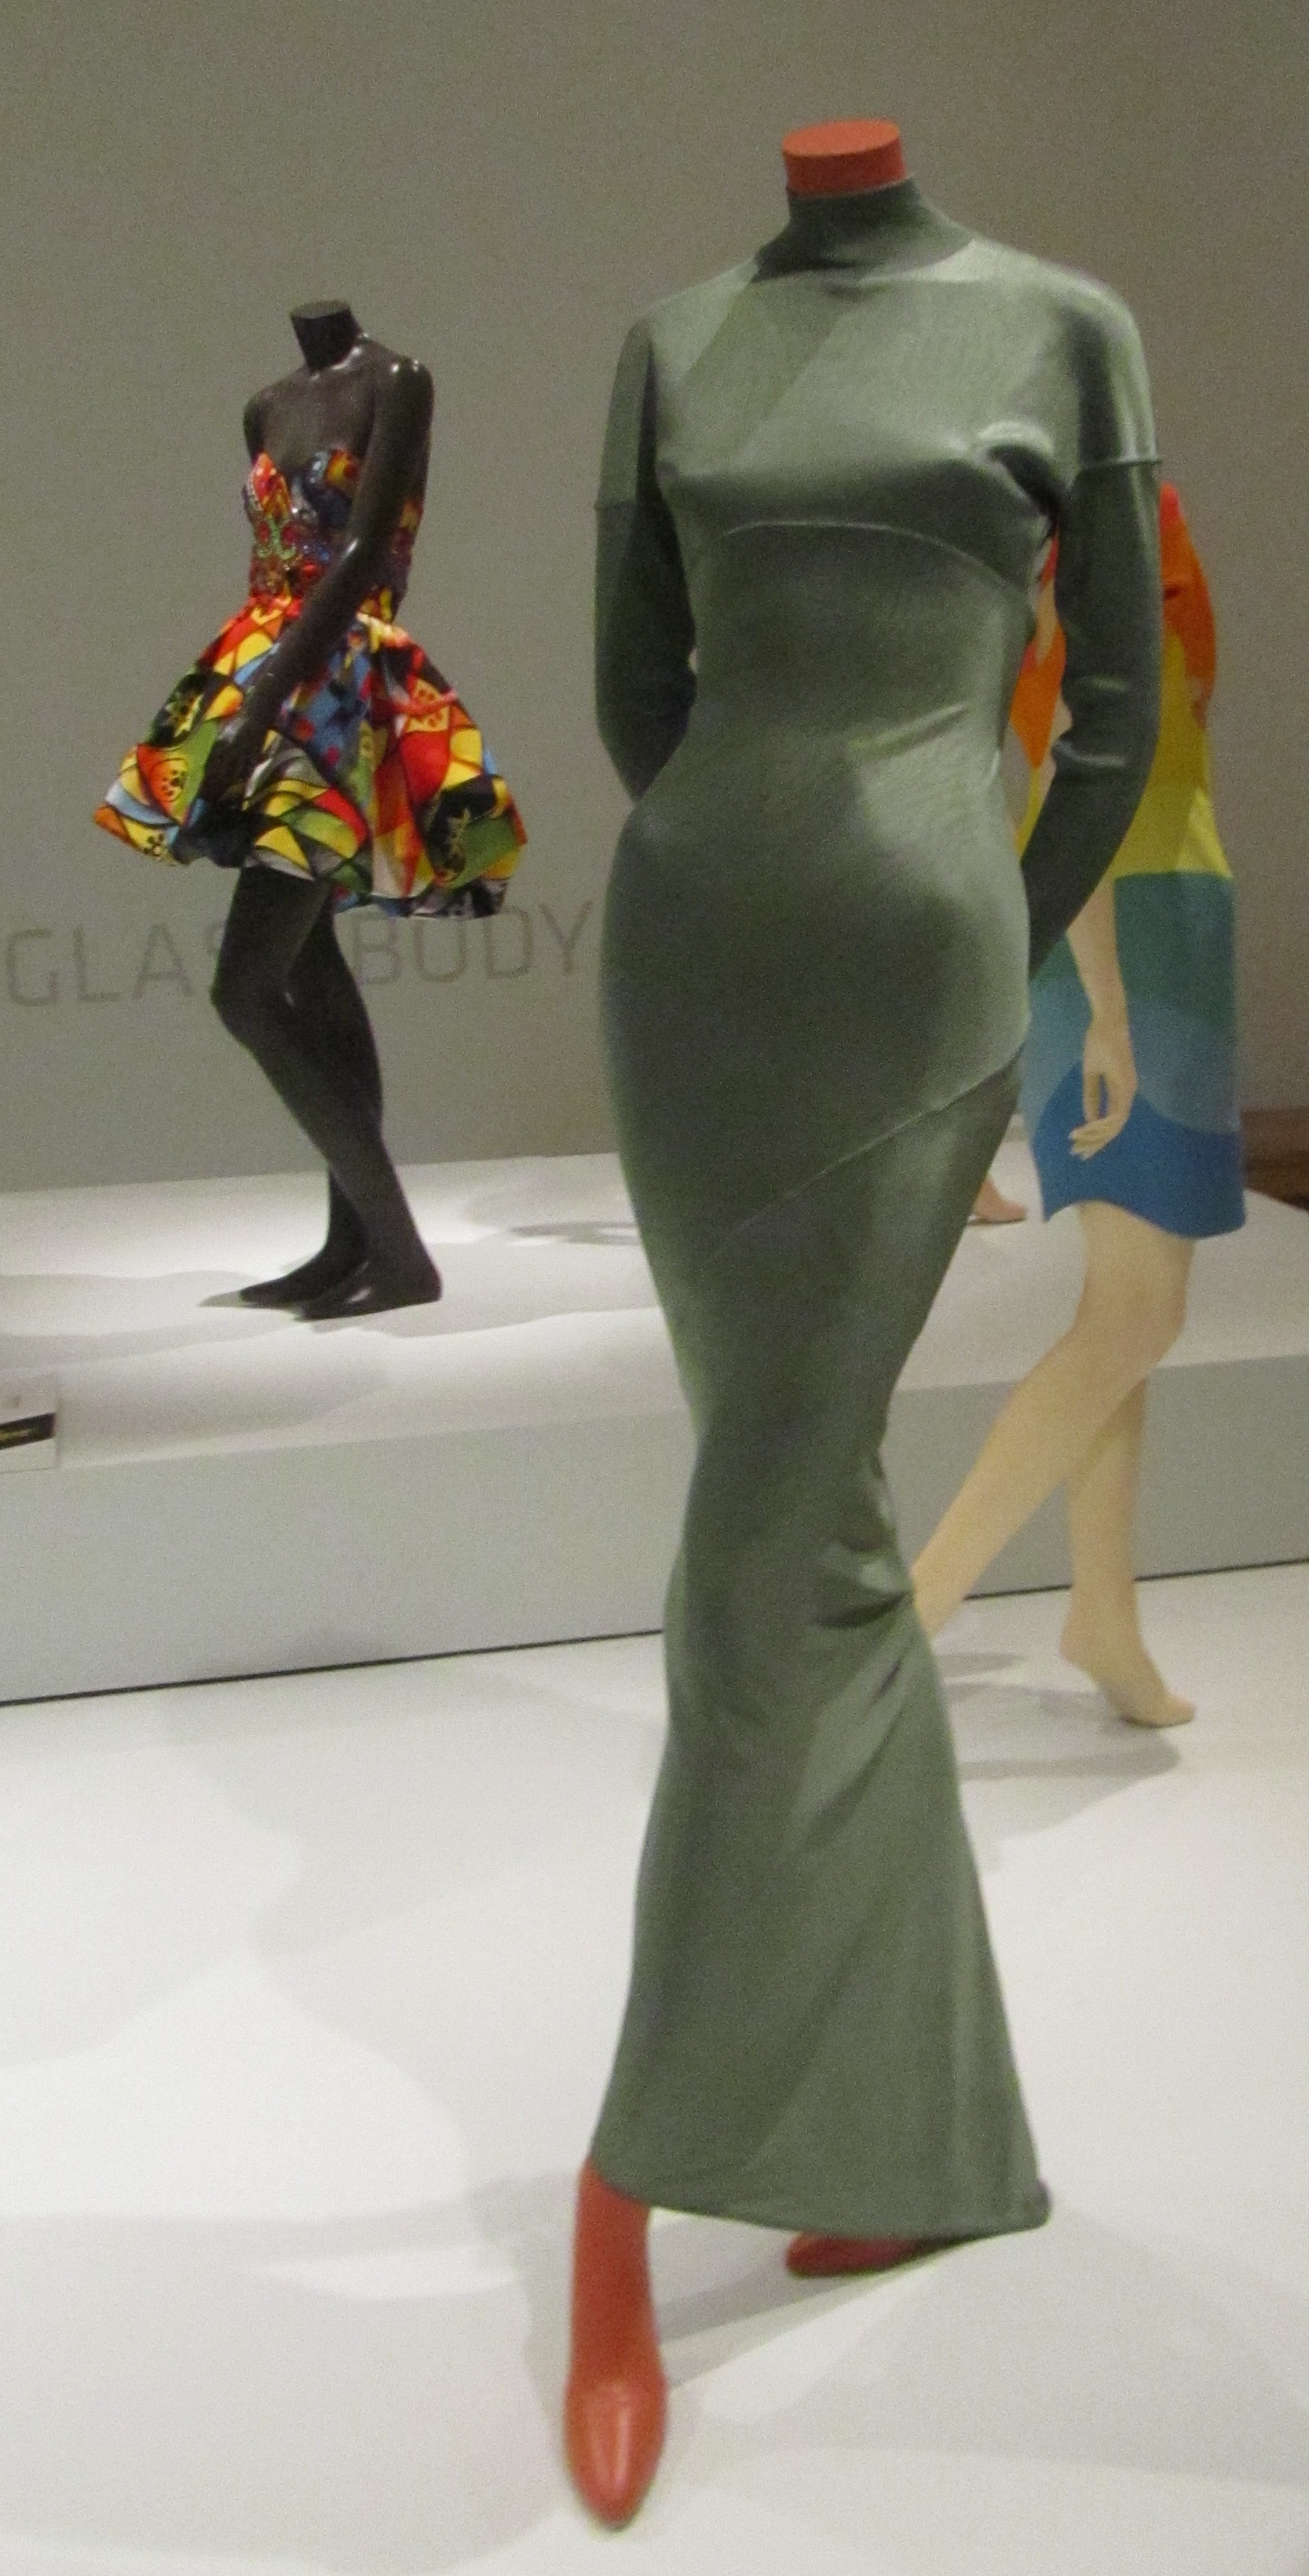 alaia dress By ellenm1 [CC BY 2.0 (https://creativecommons.org/licenses/by/2.0)], via Wikimedia Commons